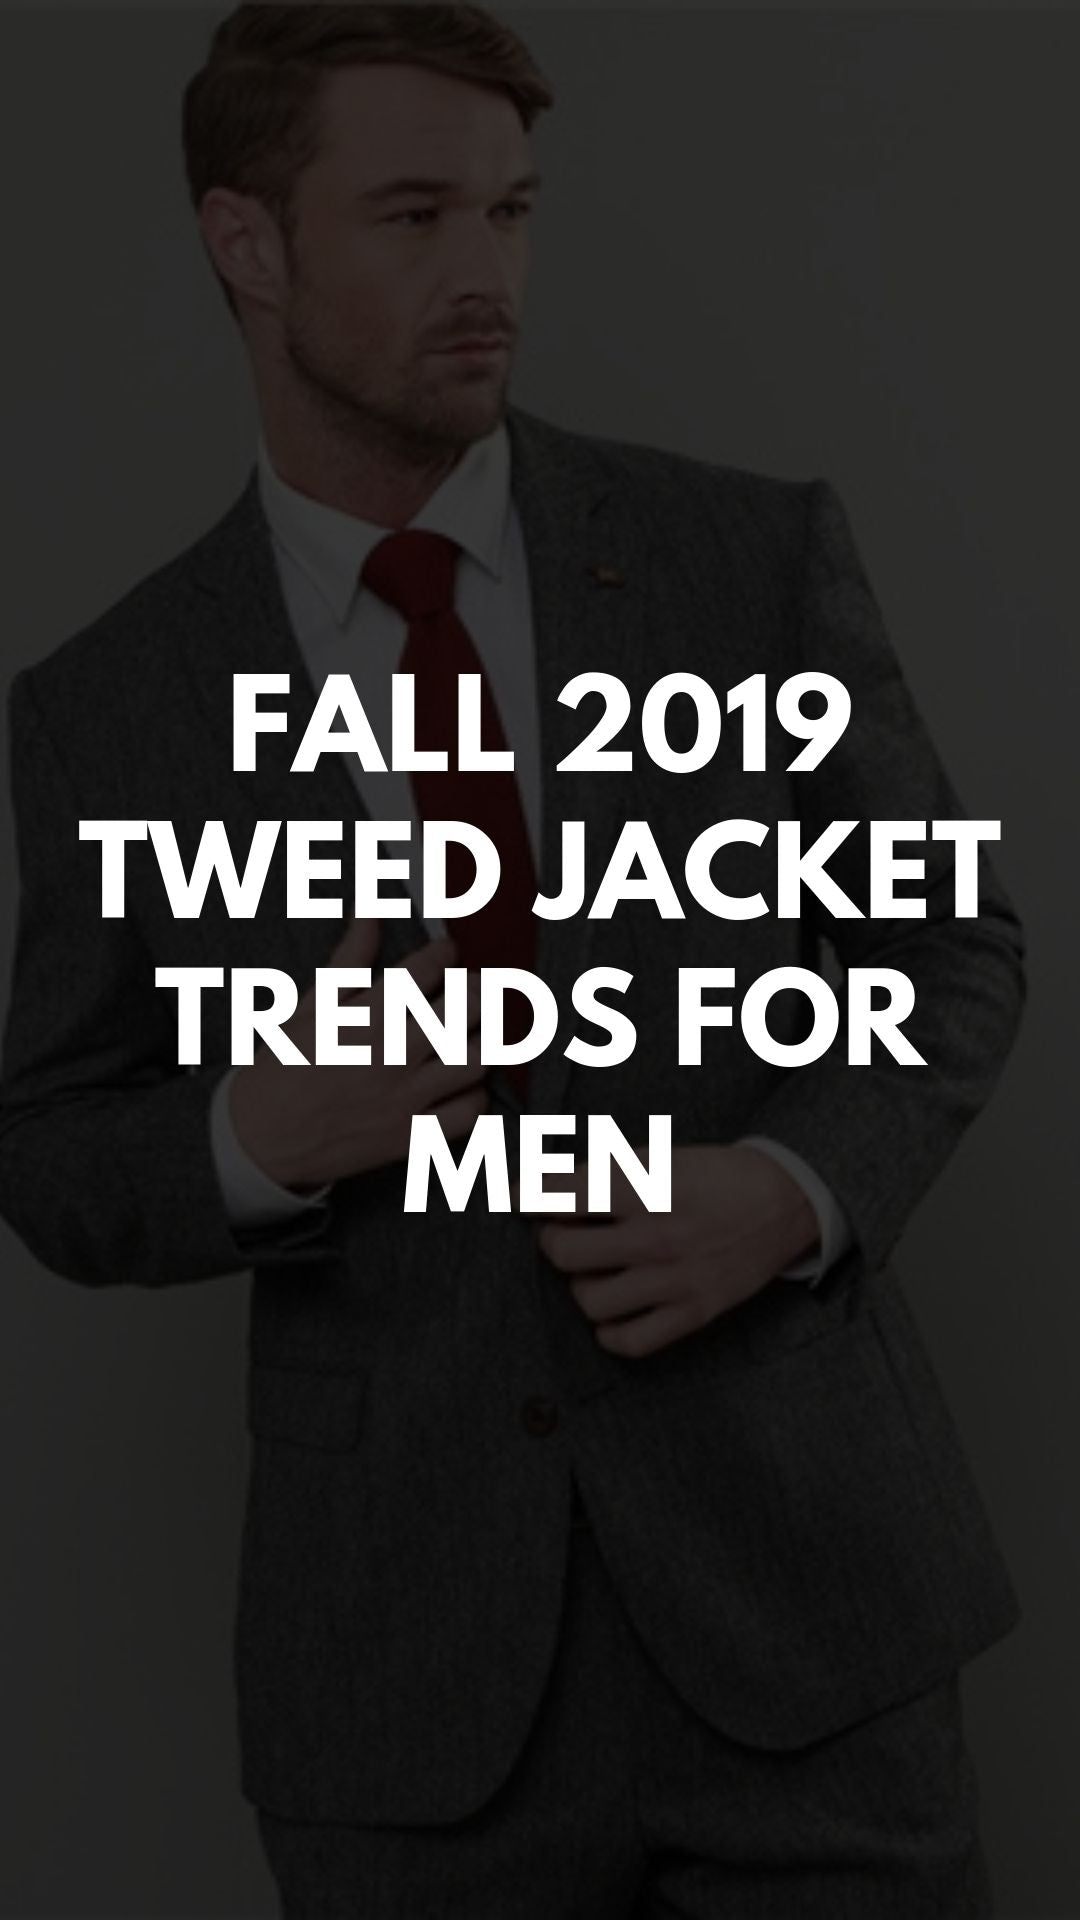 FALL 2019  TWEED JACKET TRENDS FOR MEN